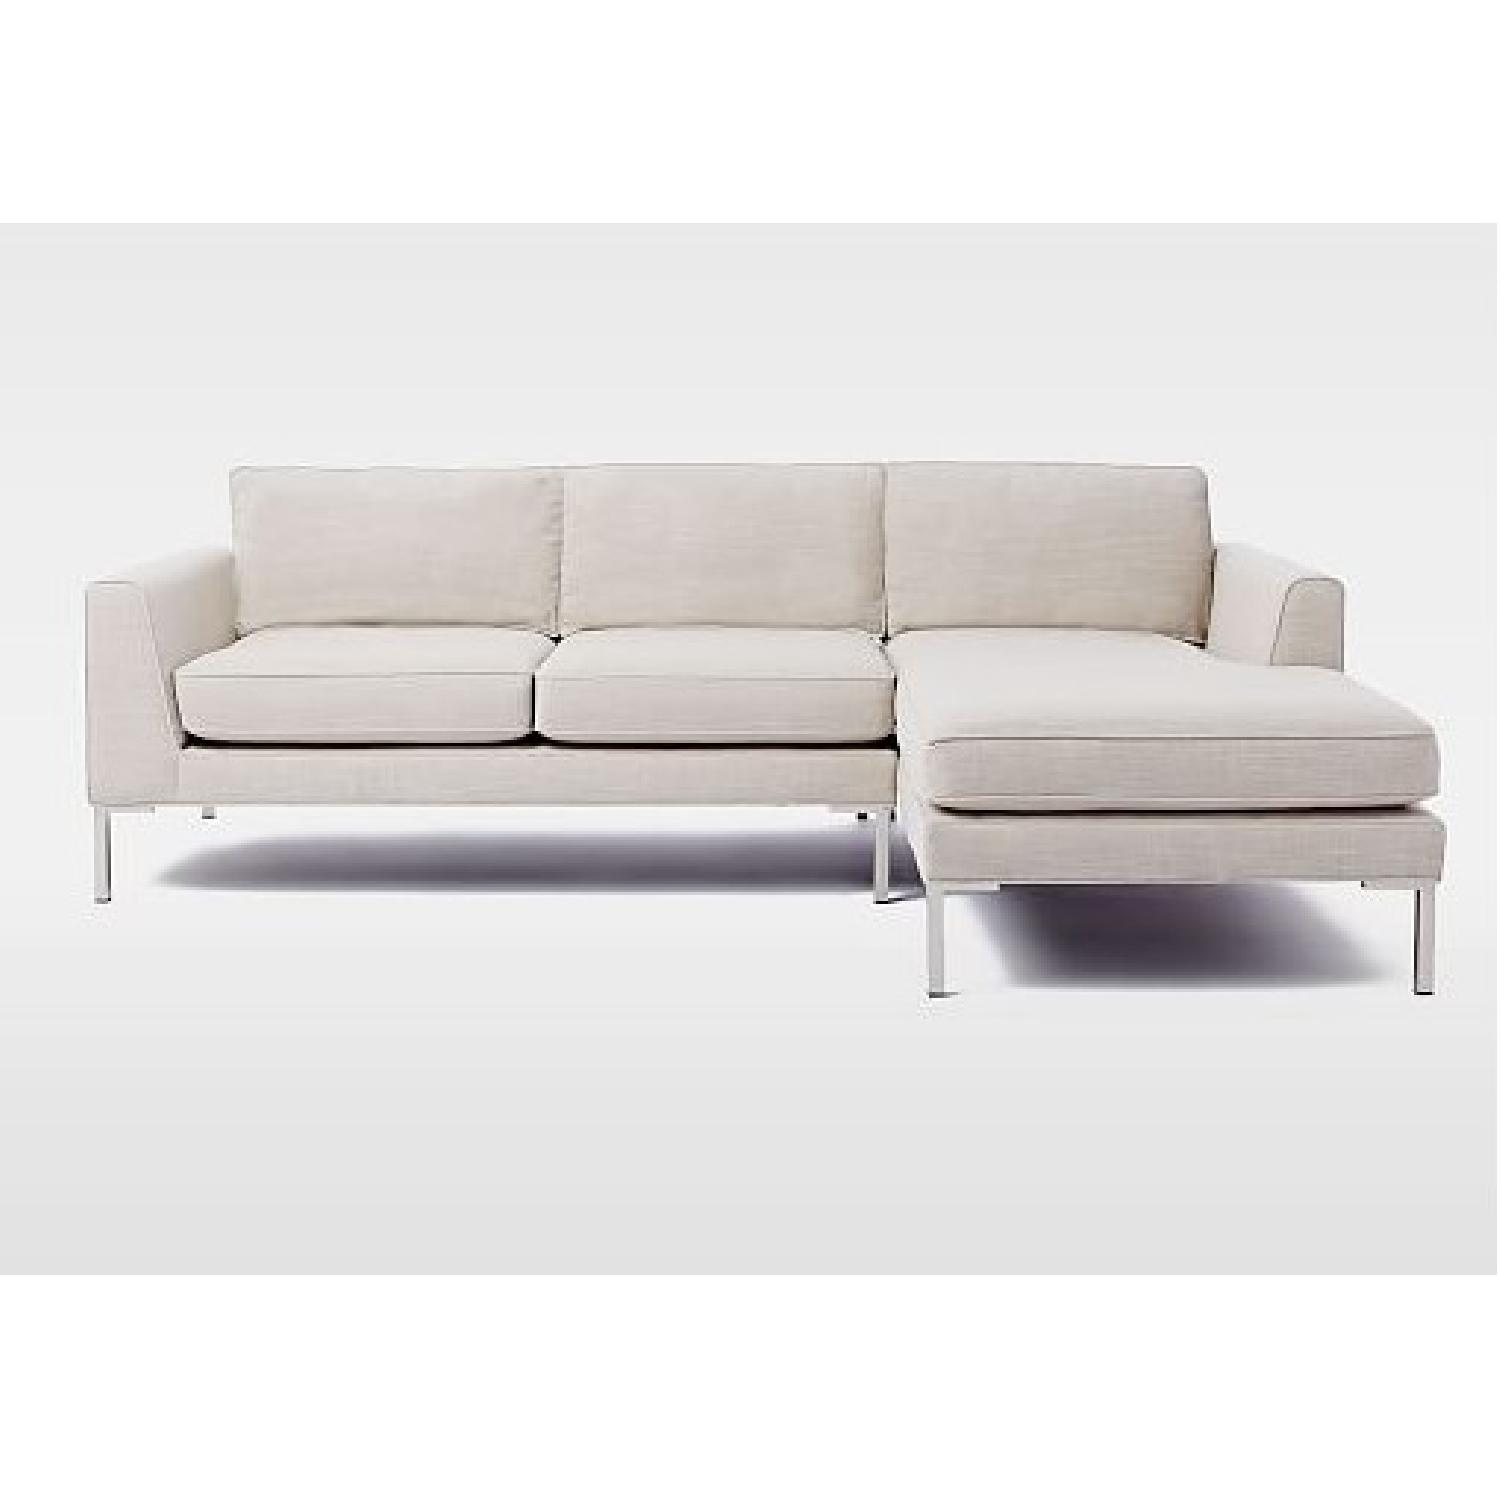 West elm marco 2 piece chaise sectional sofa aptdeco for 2 piece sectional with chaise lounge